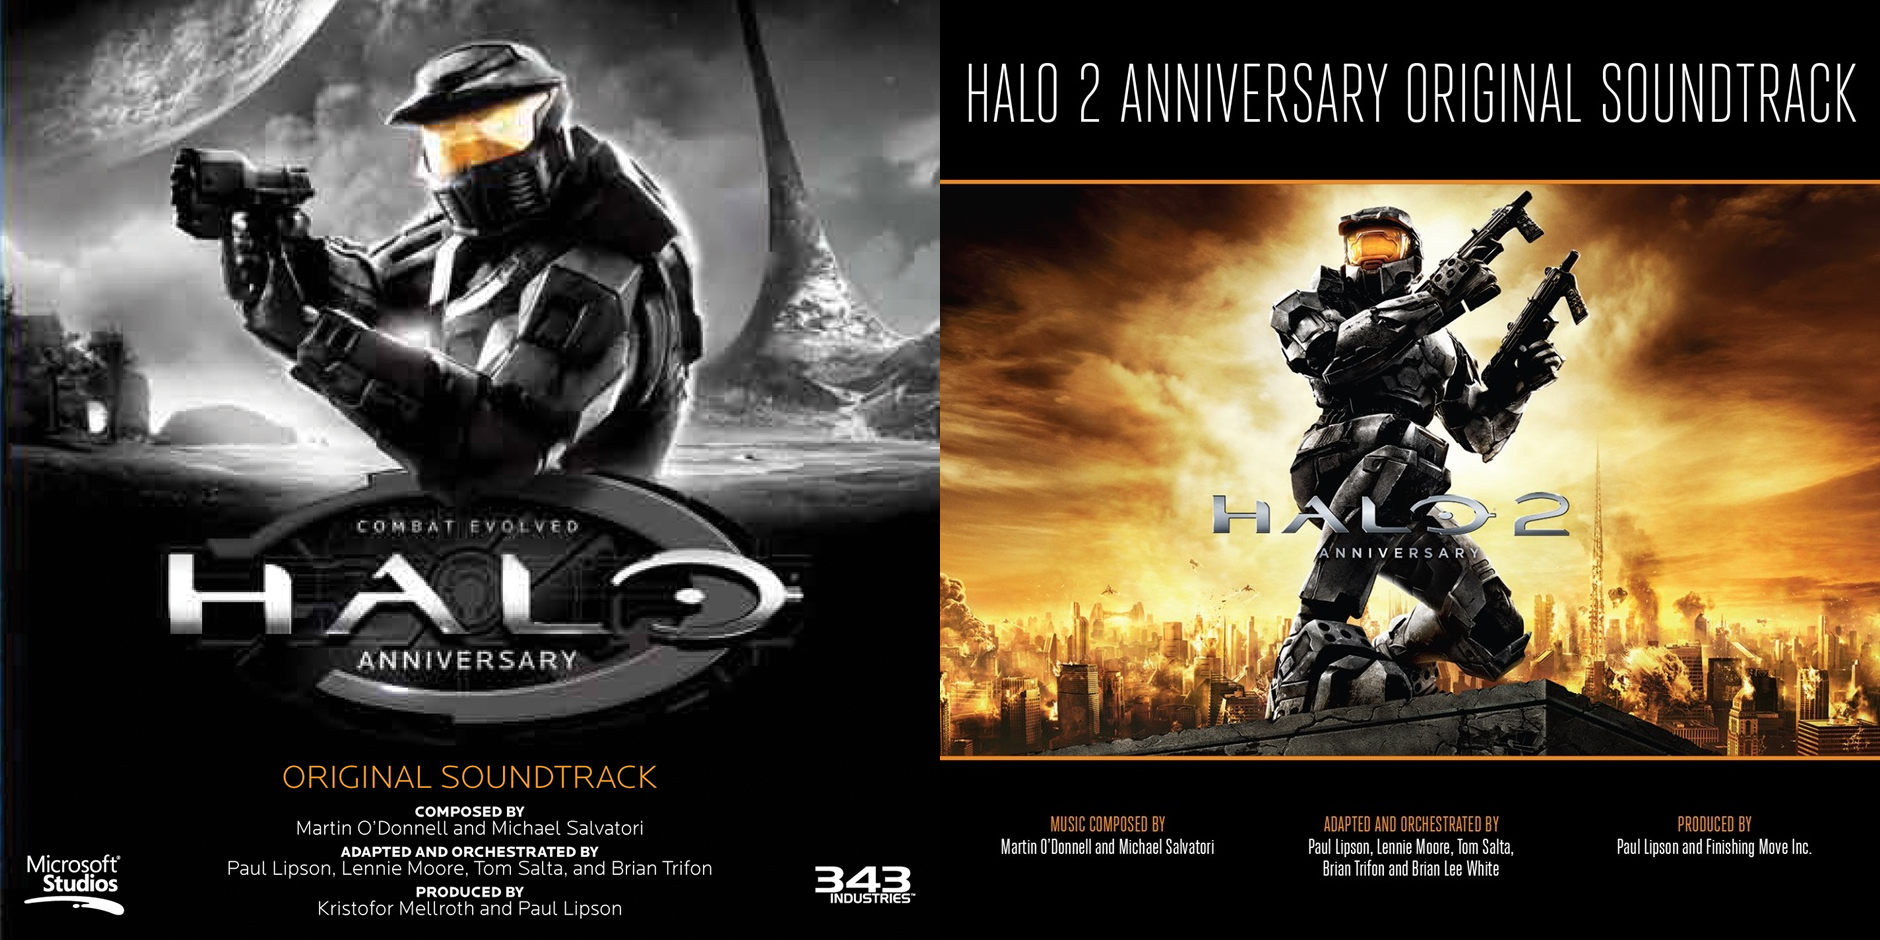 image of Halo Anniversary CD booklets